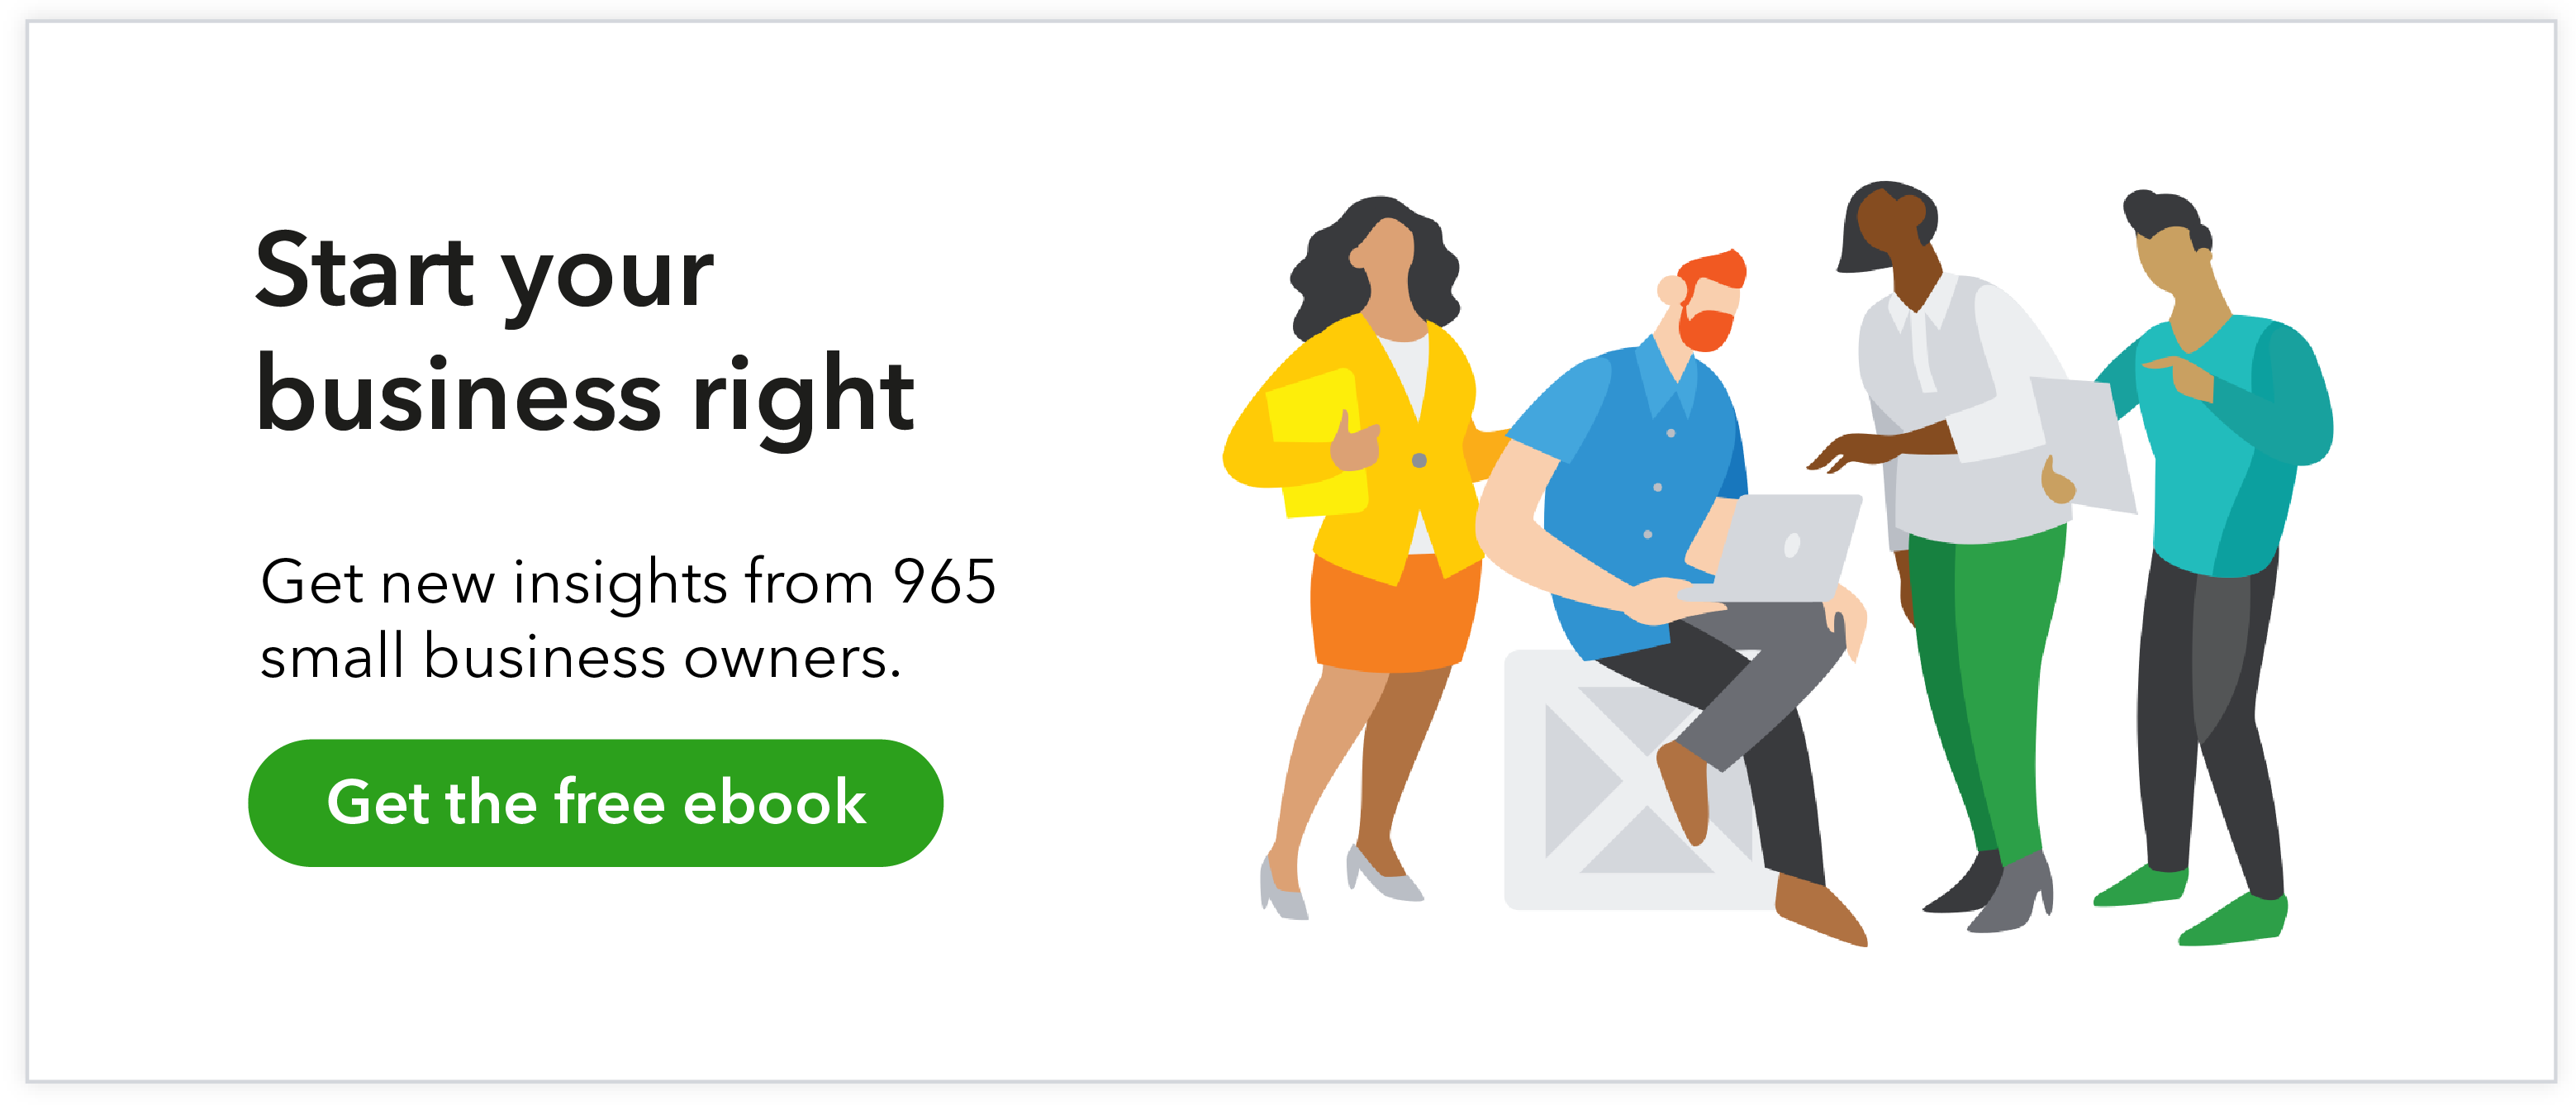 Start your business right. Get new insights from 965 small business owners.